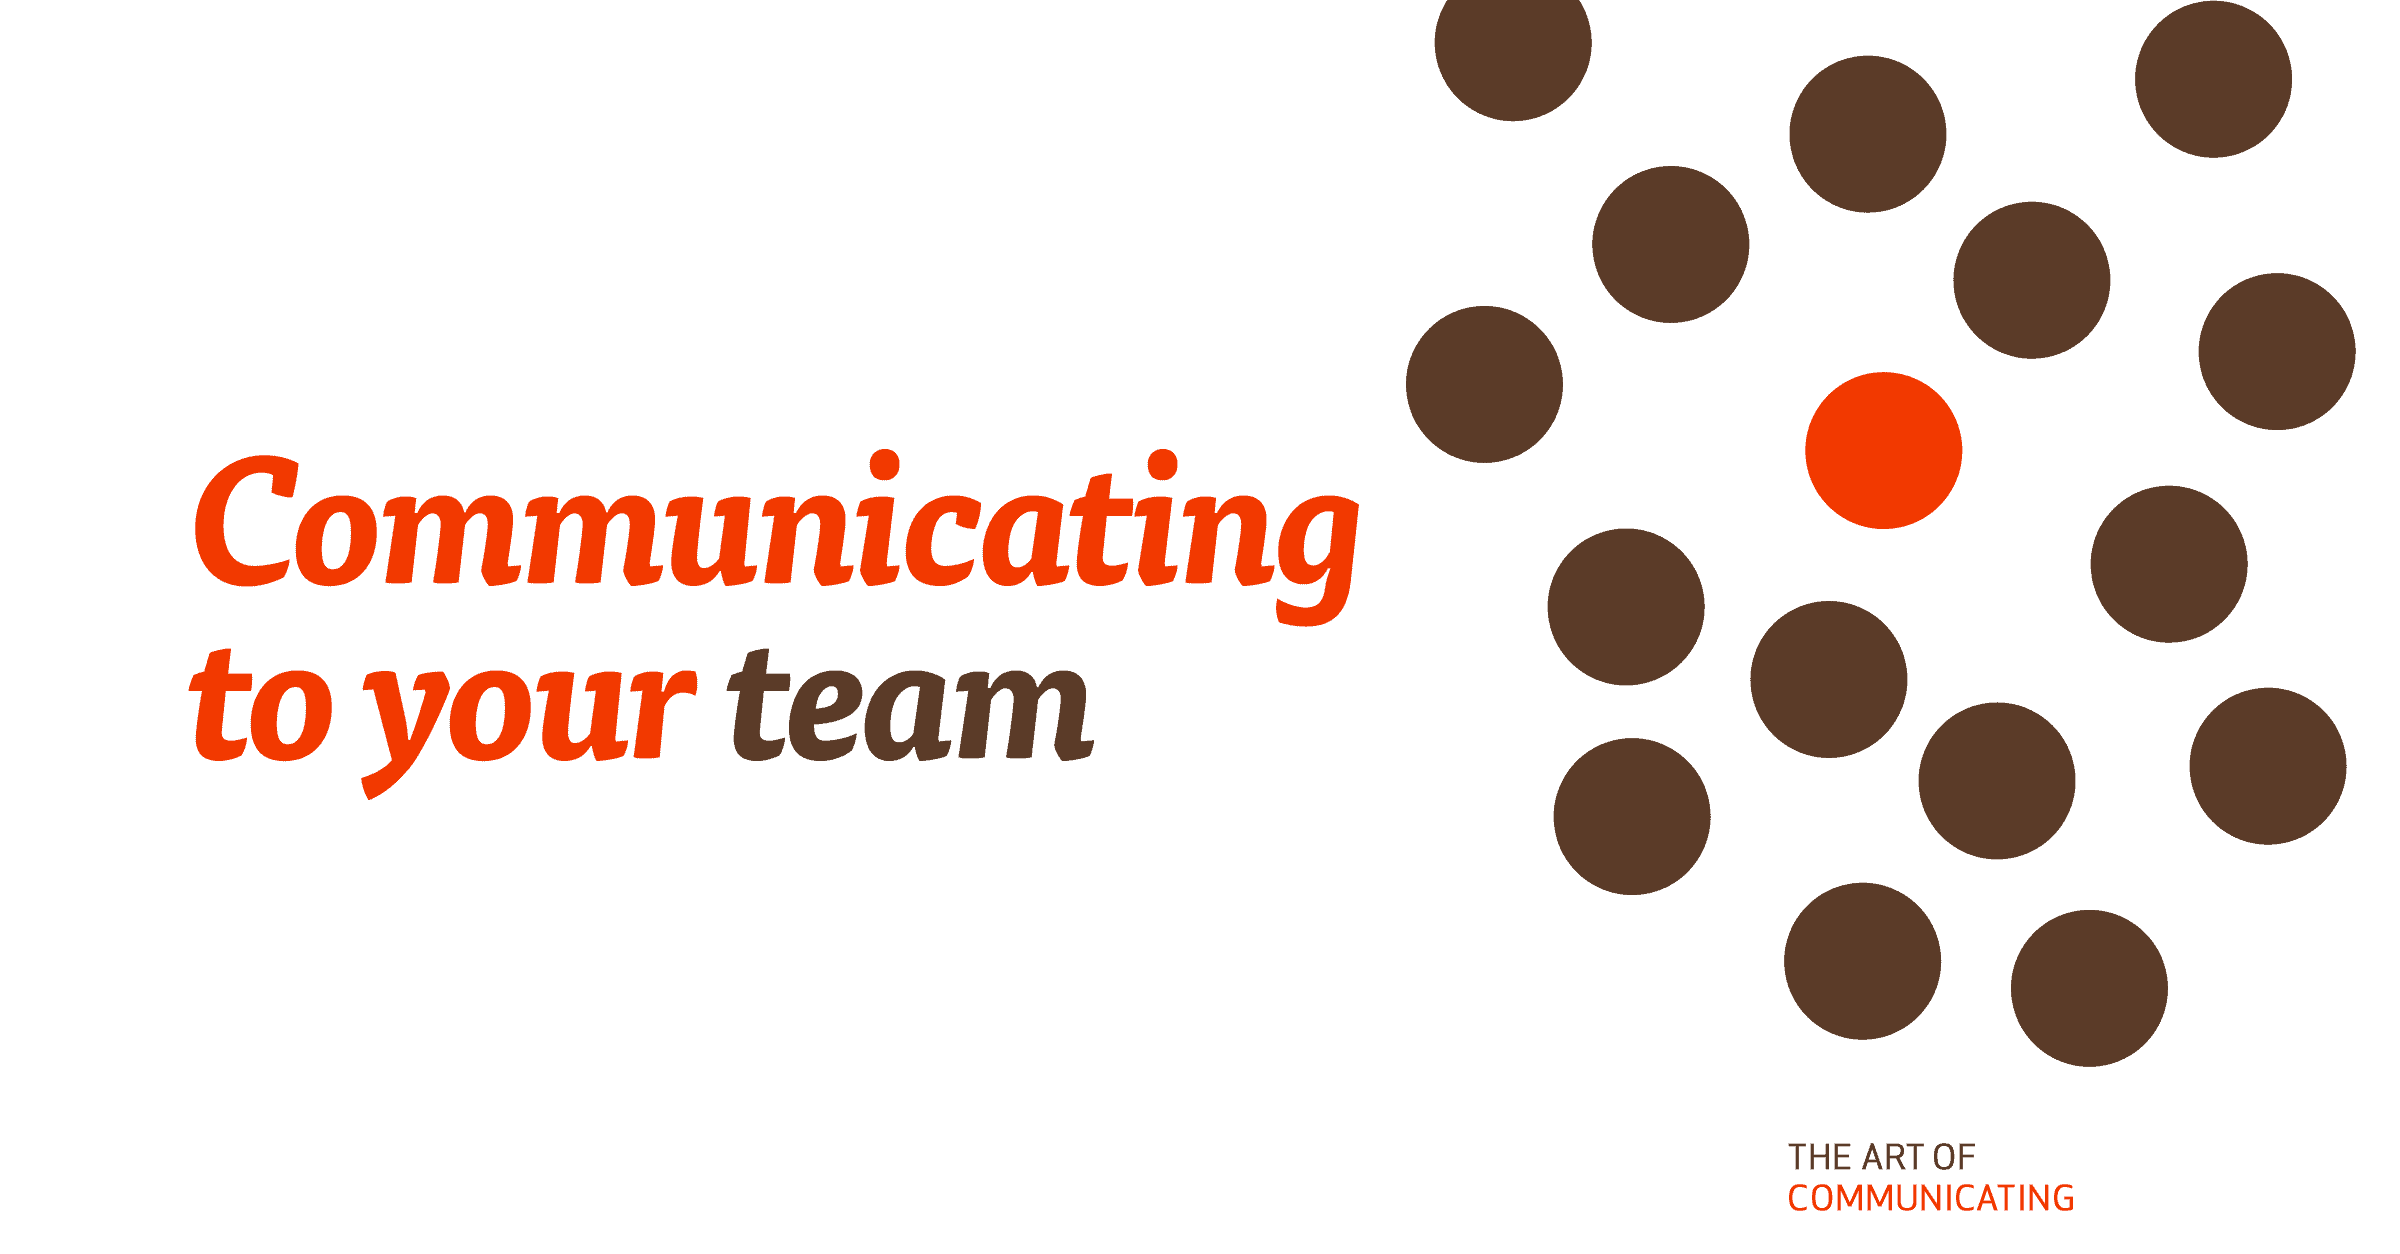 Communicating to your team